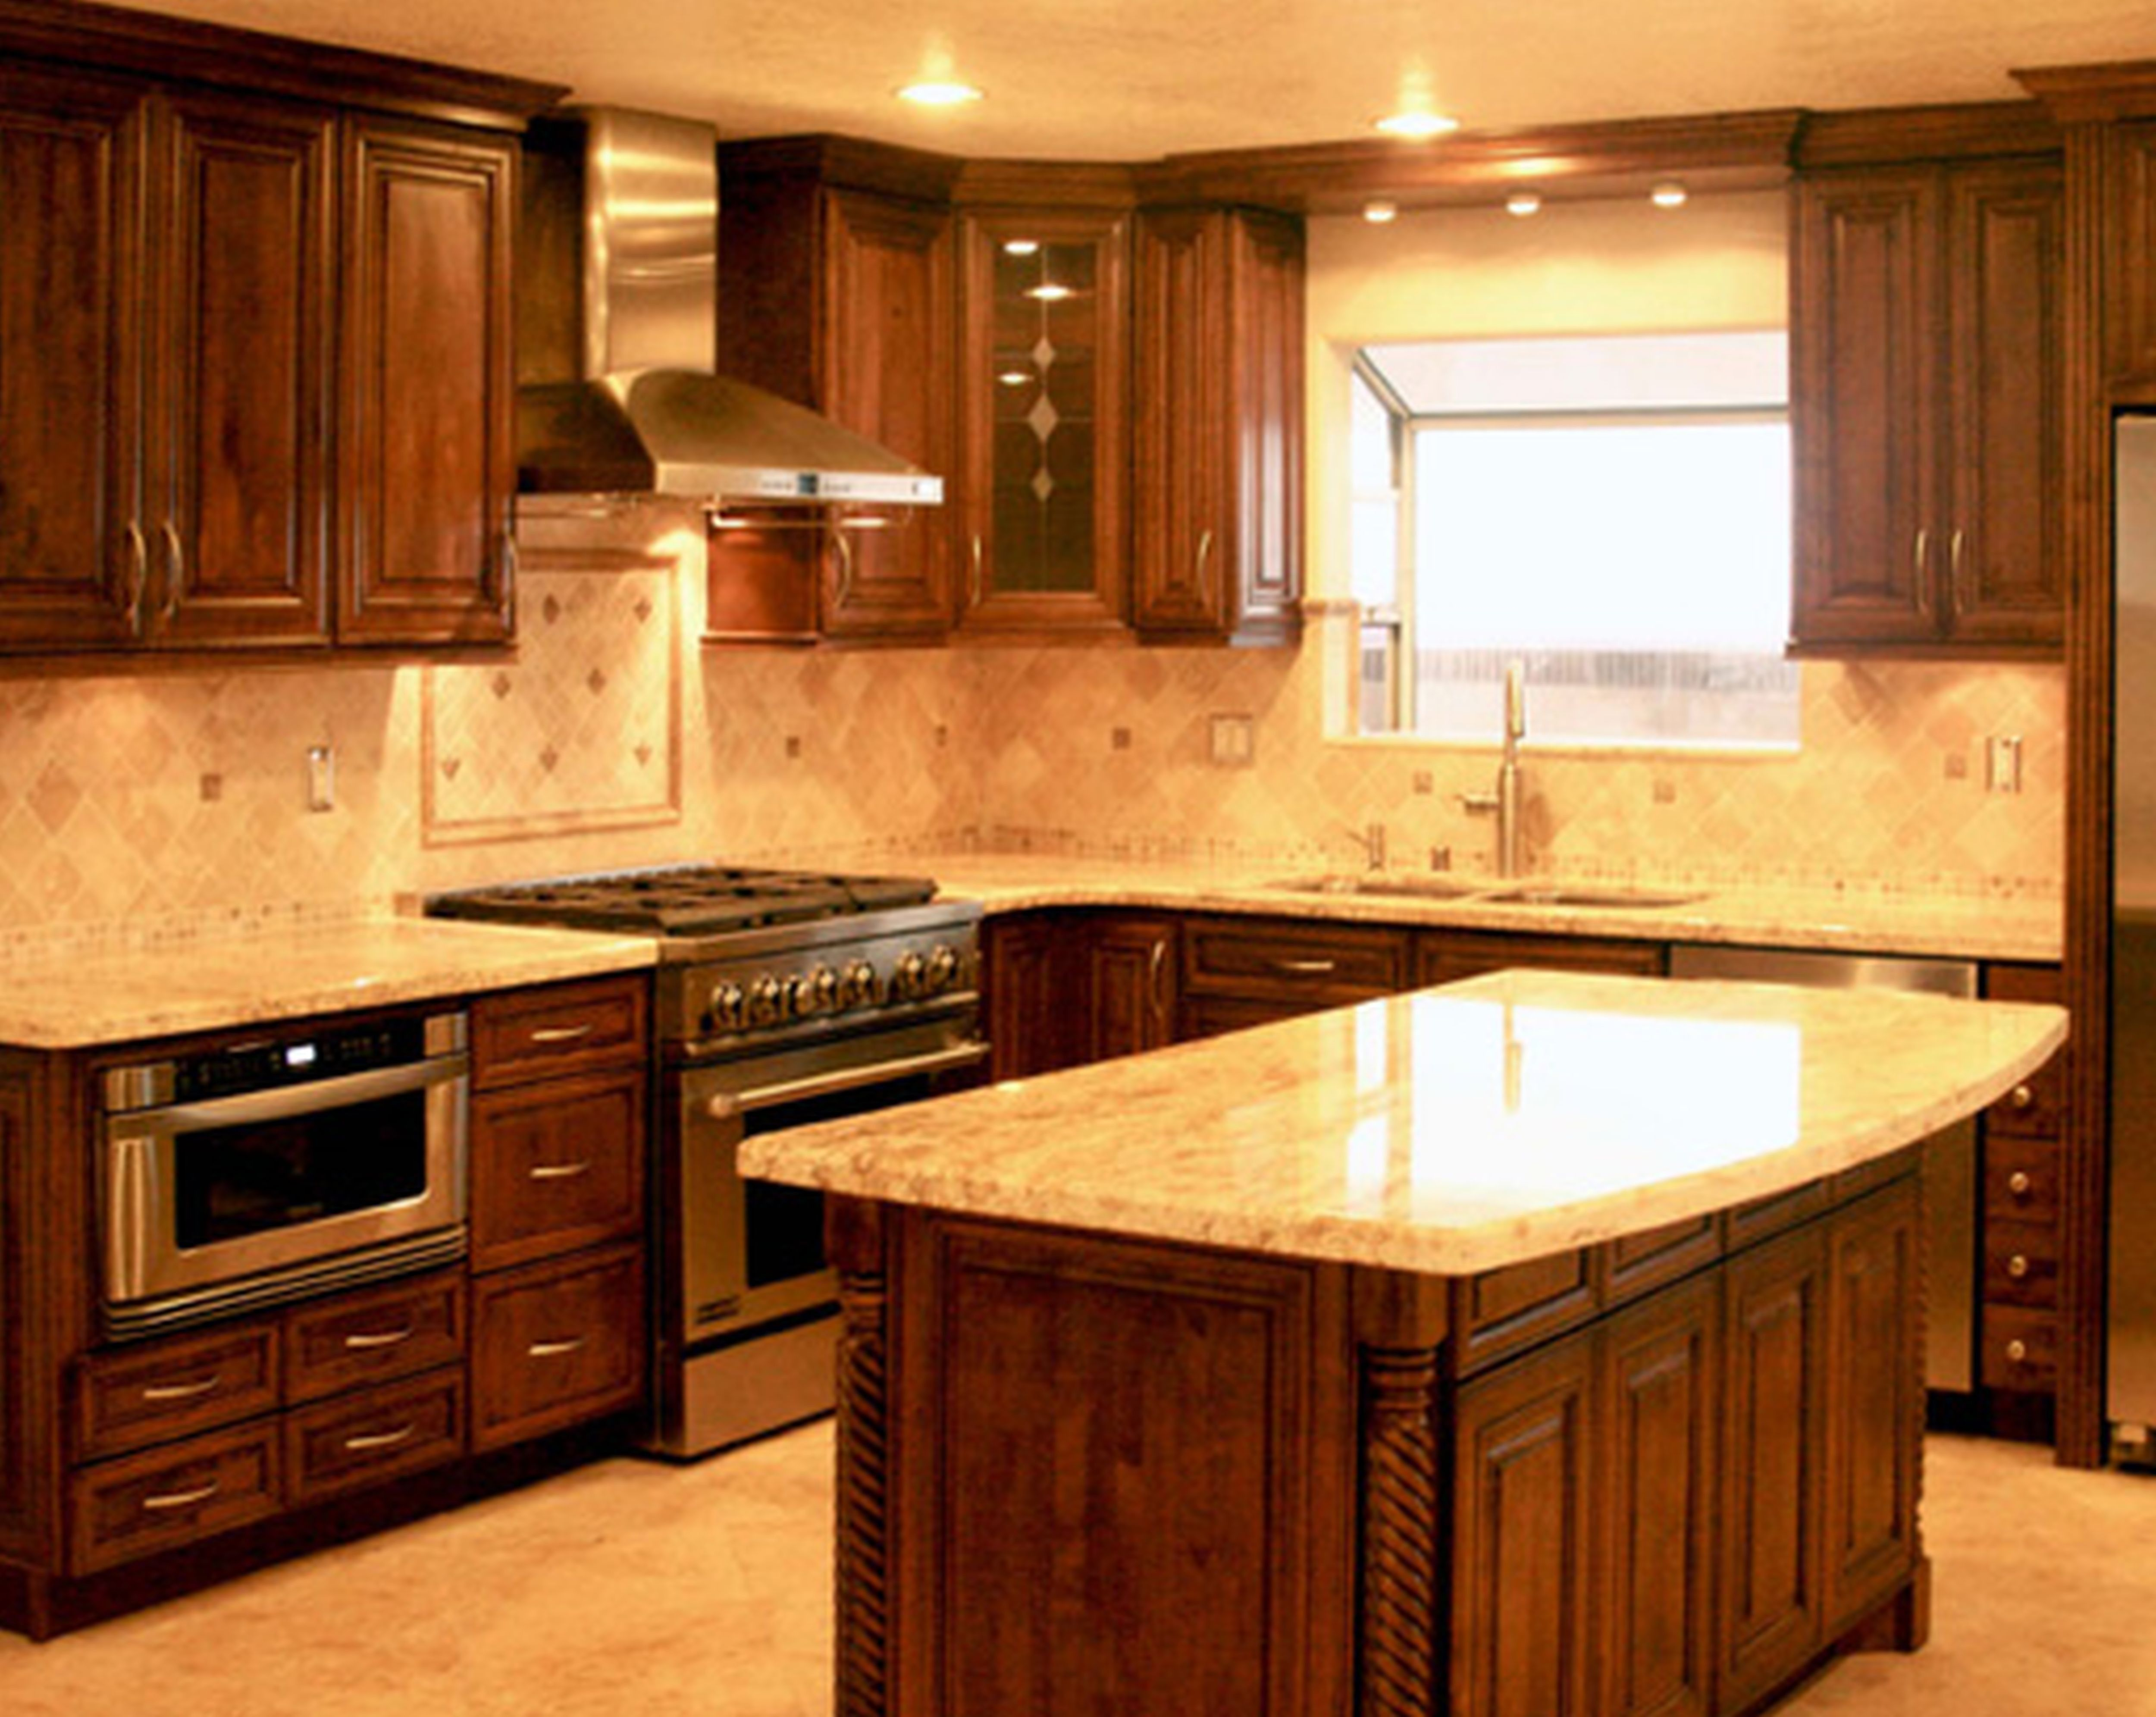 Unique Manufactured Homes Kitchen Cabinets Unfinished Kitchen Cabinets Kitchen Decor Pictures Kitchen Cabinets For Sale